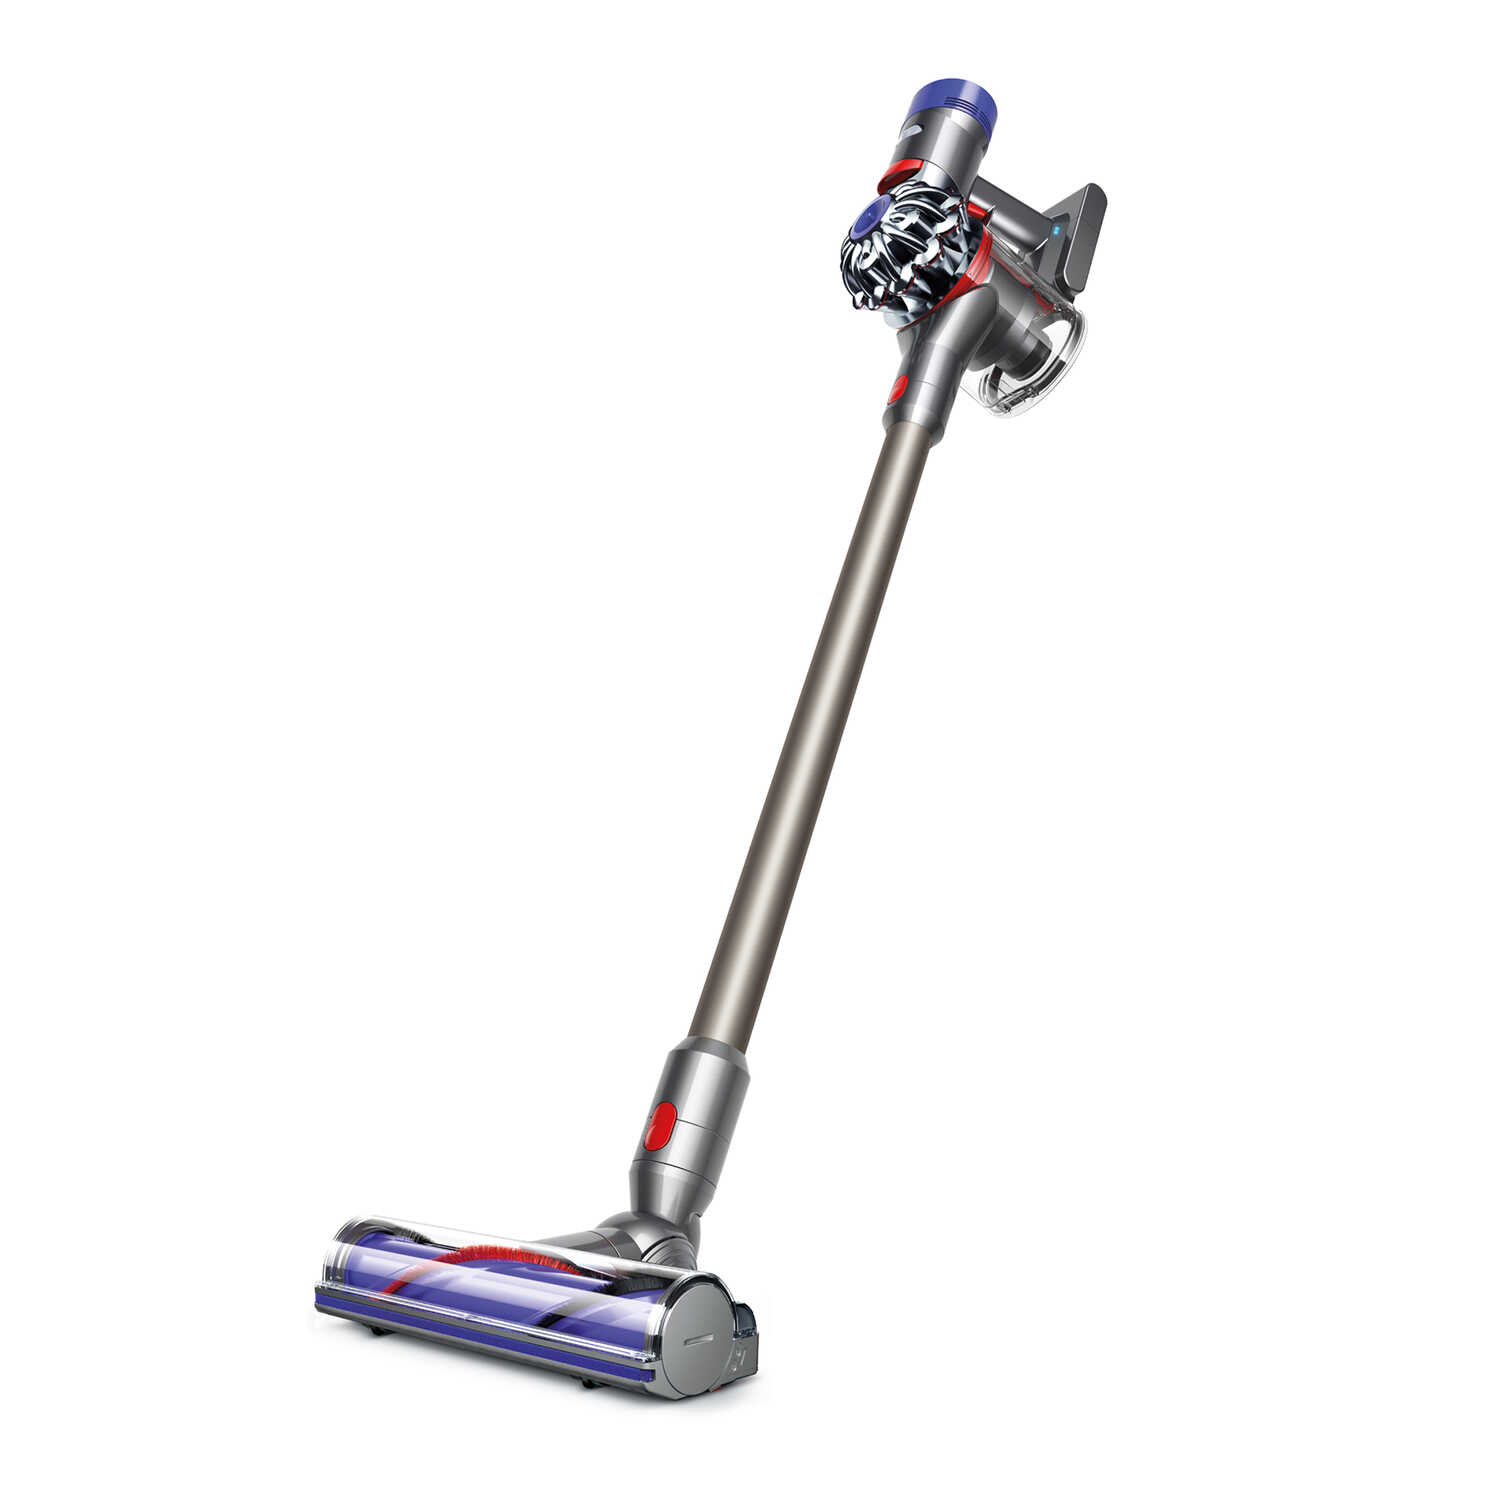 Dyson  Animal  Bagless  Rechargeable Stick/Hand Vacuum  21.6 amps HEPA  Fuscia/Steel